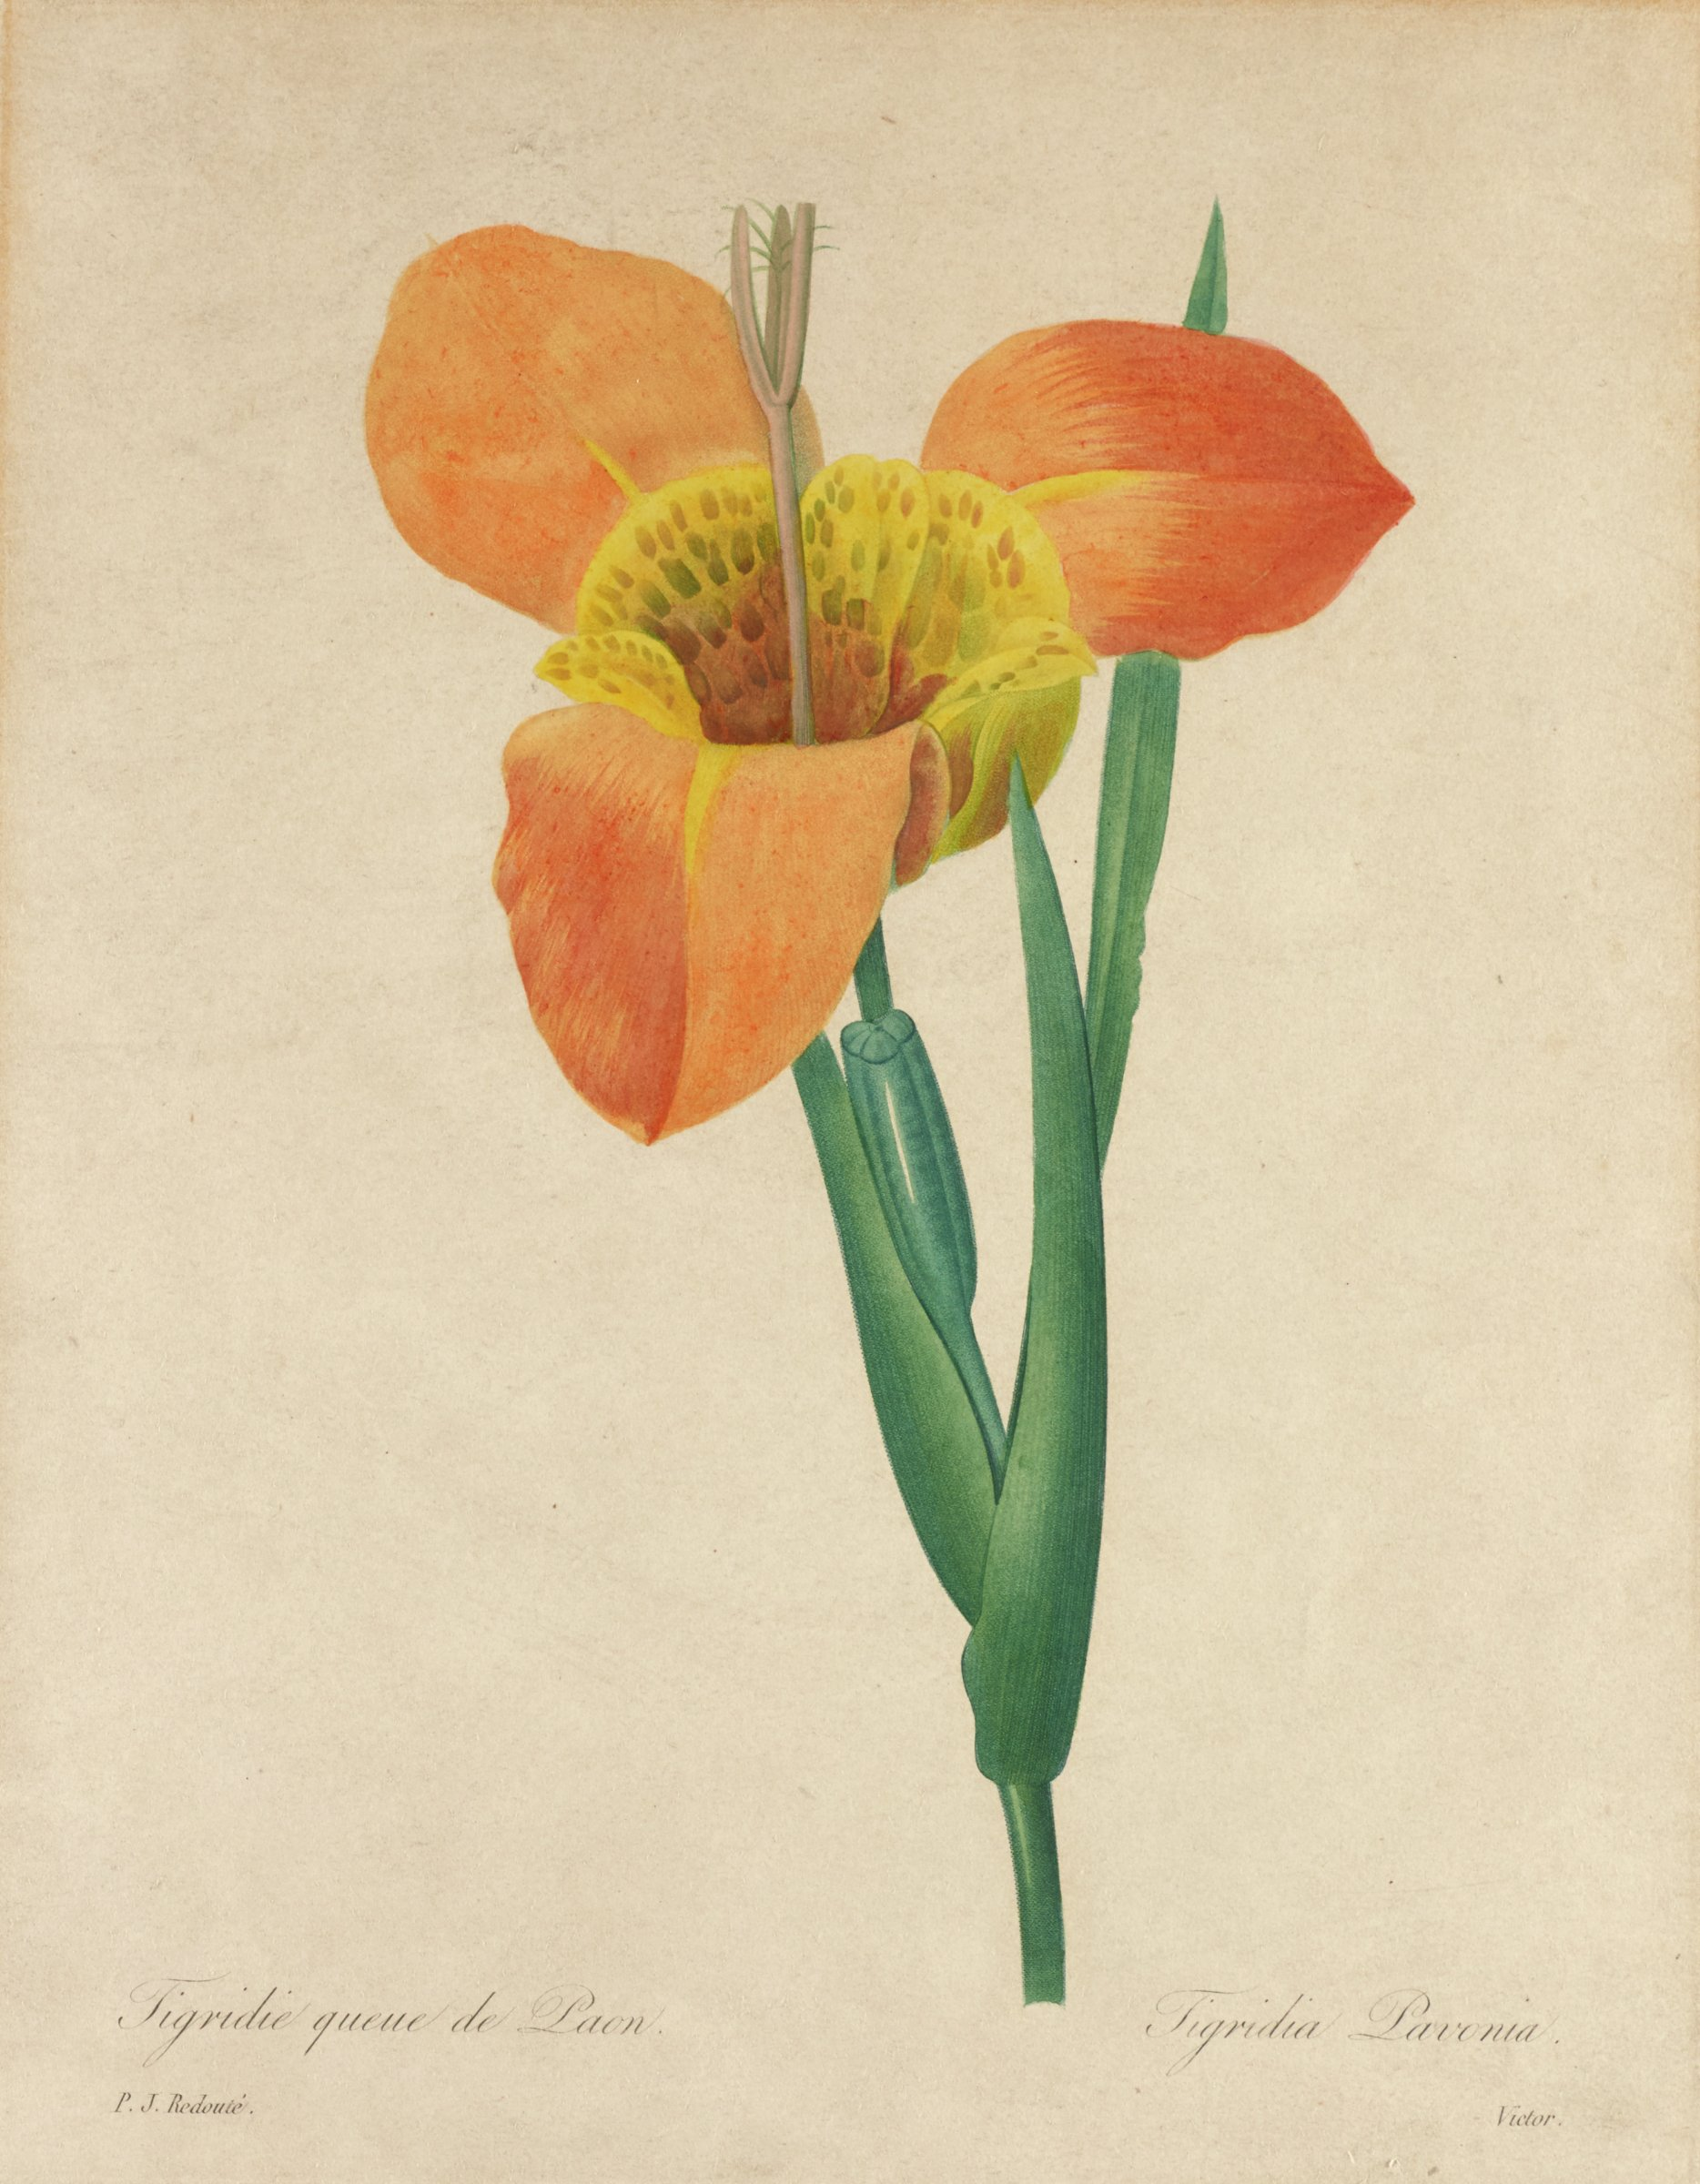 A botanical print depicting an orange and yellow flower with three petals and a thick stem with three leaves.